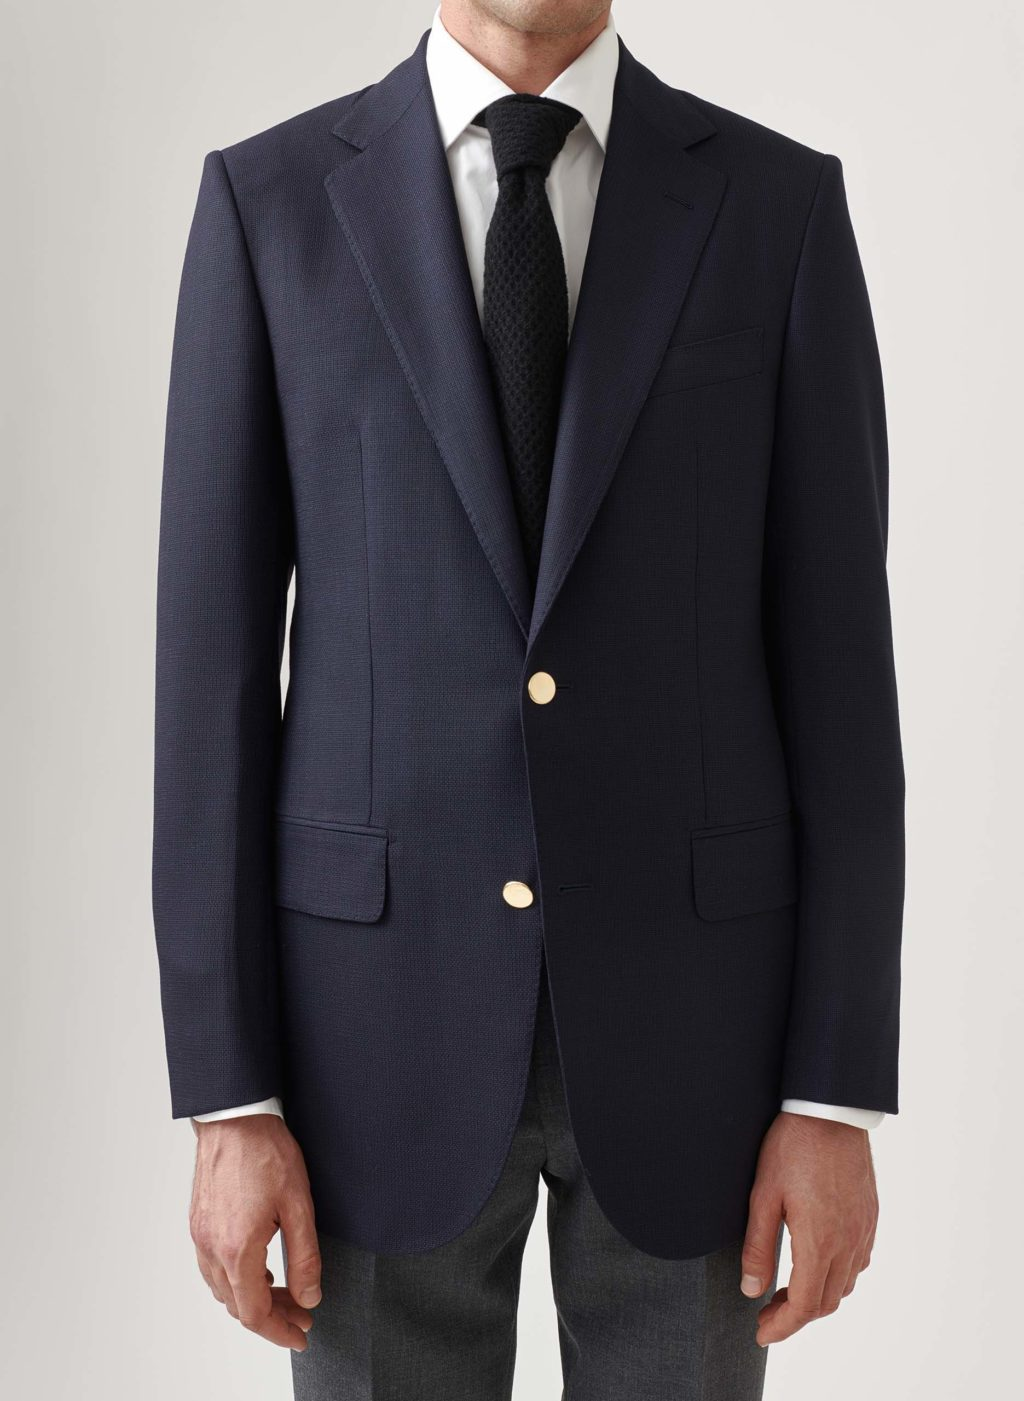 Single-breasted mignight blue blazer with golden buttons